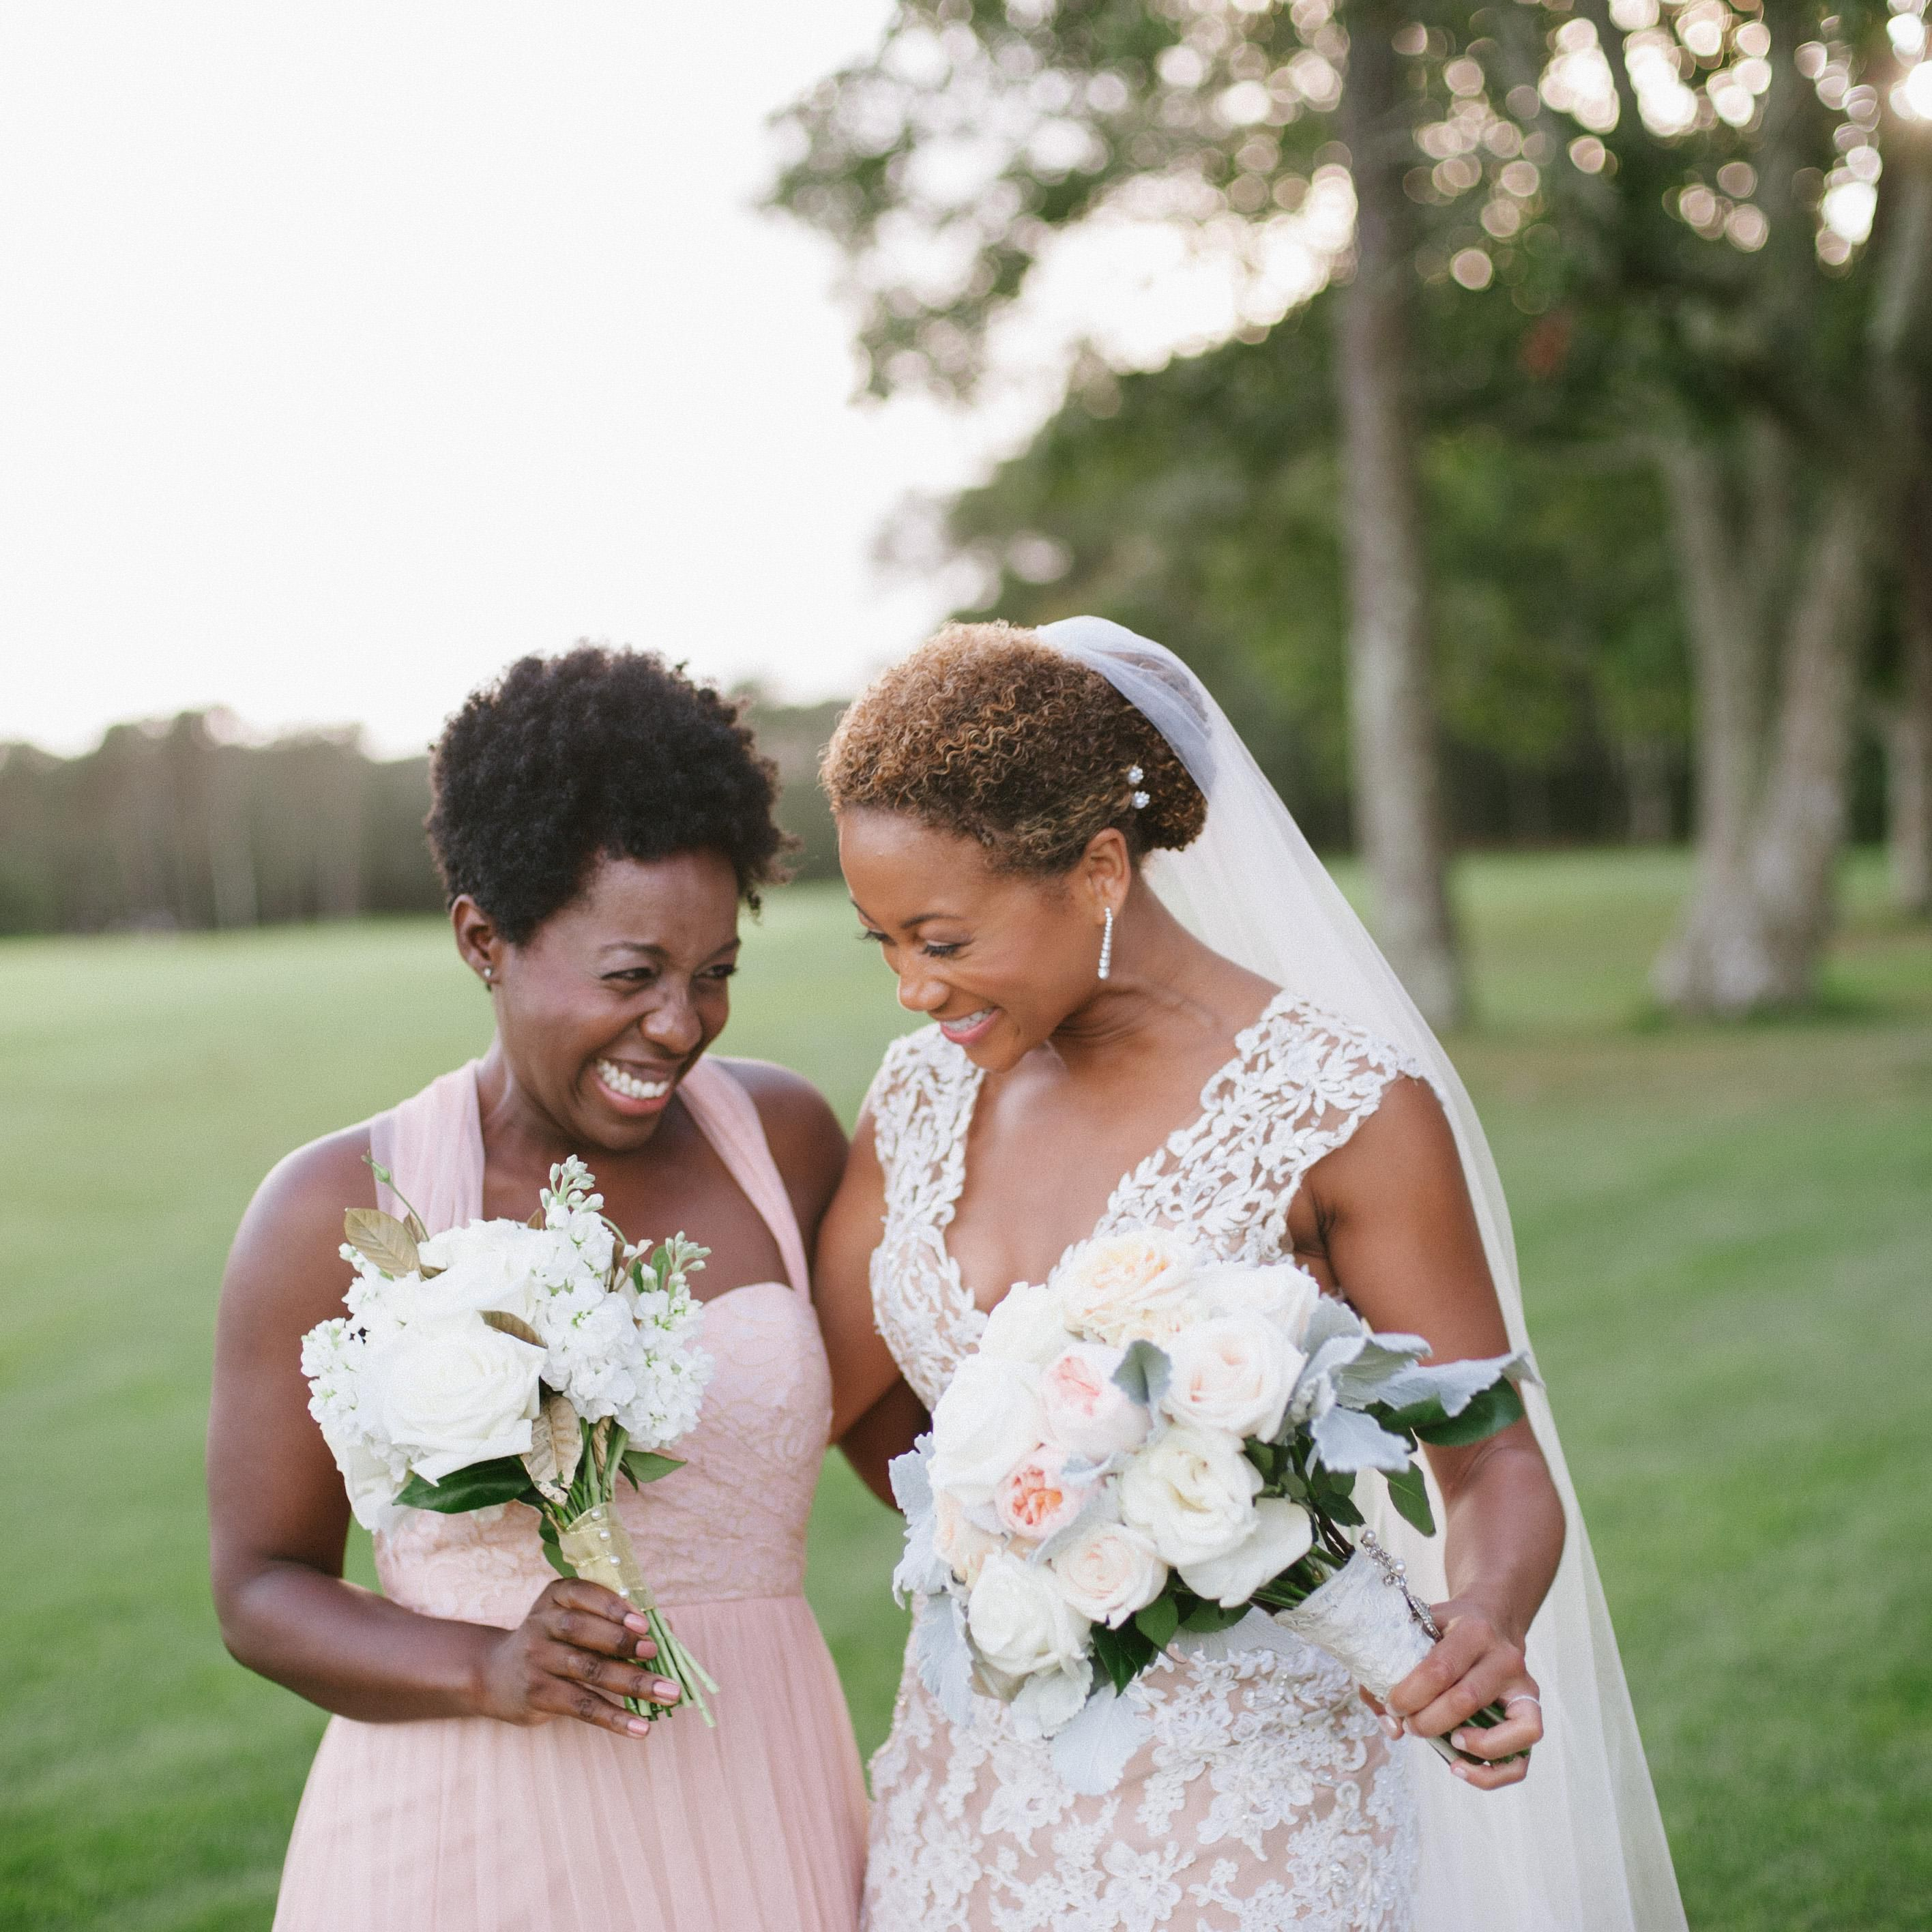 Real Maids Of Honor Share How Much Being In A Wedding Really Costs